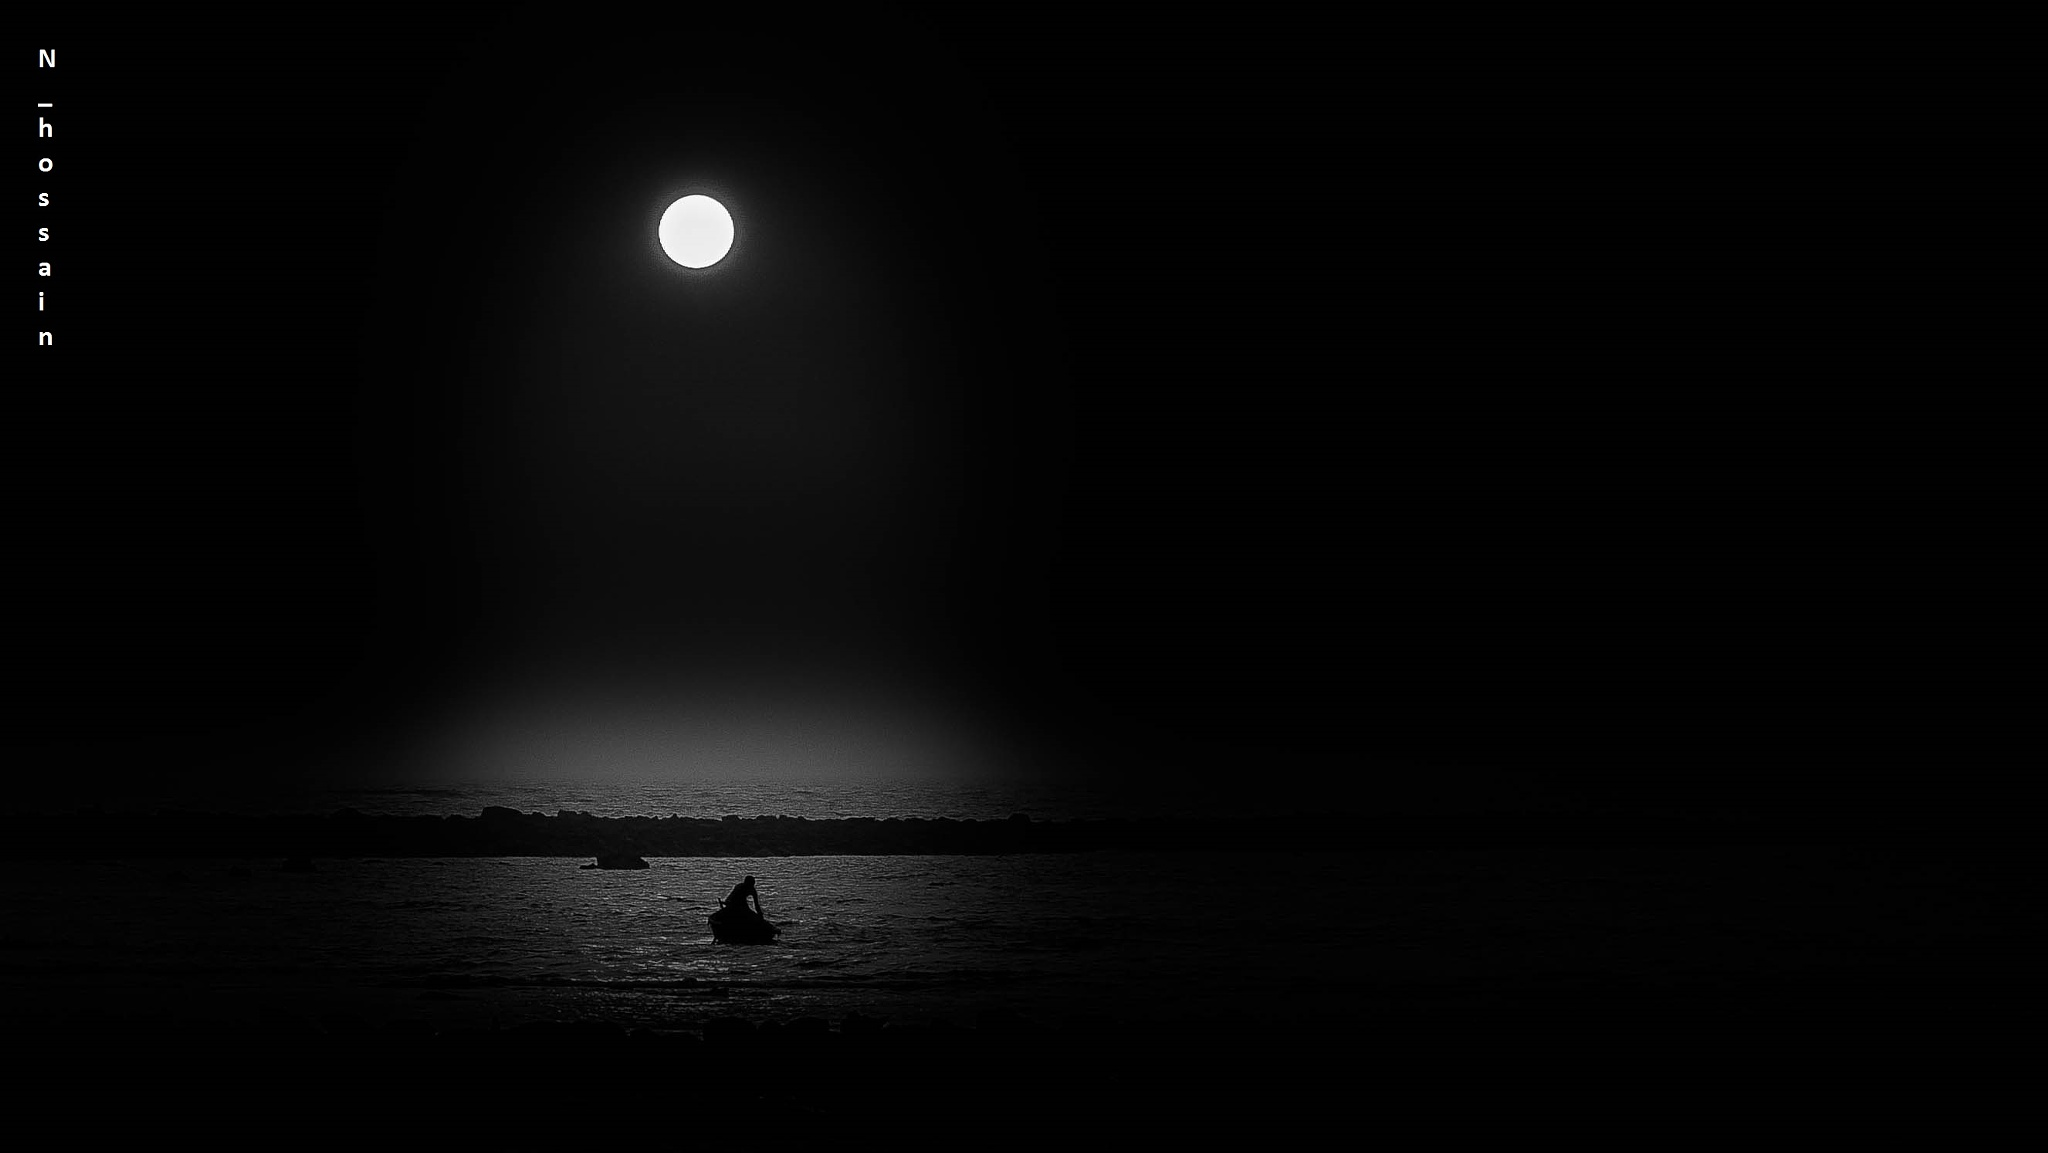 Moonlight by Nazmul Hossain